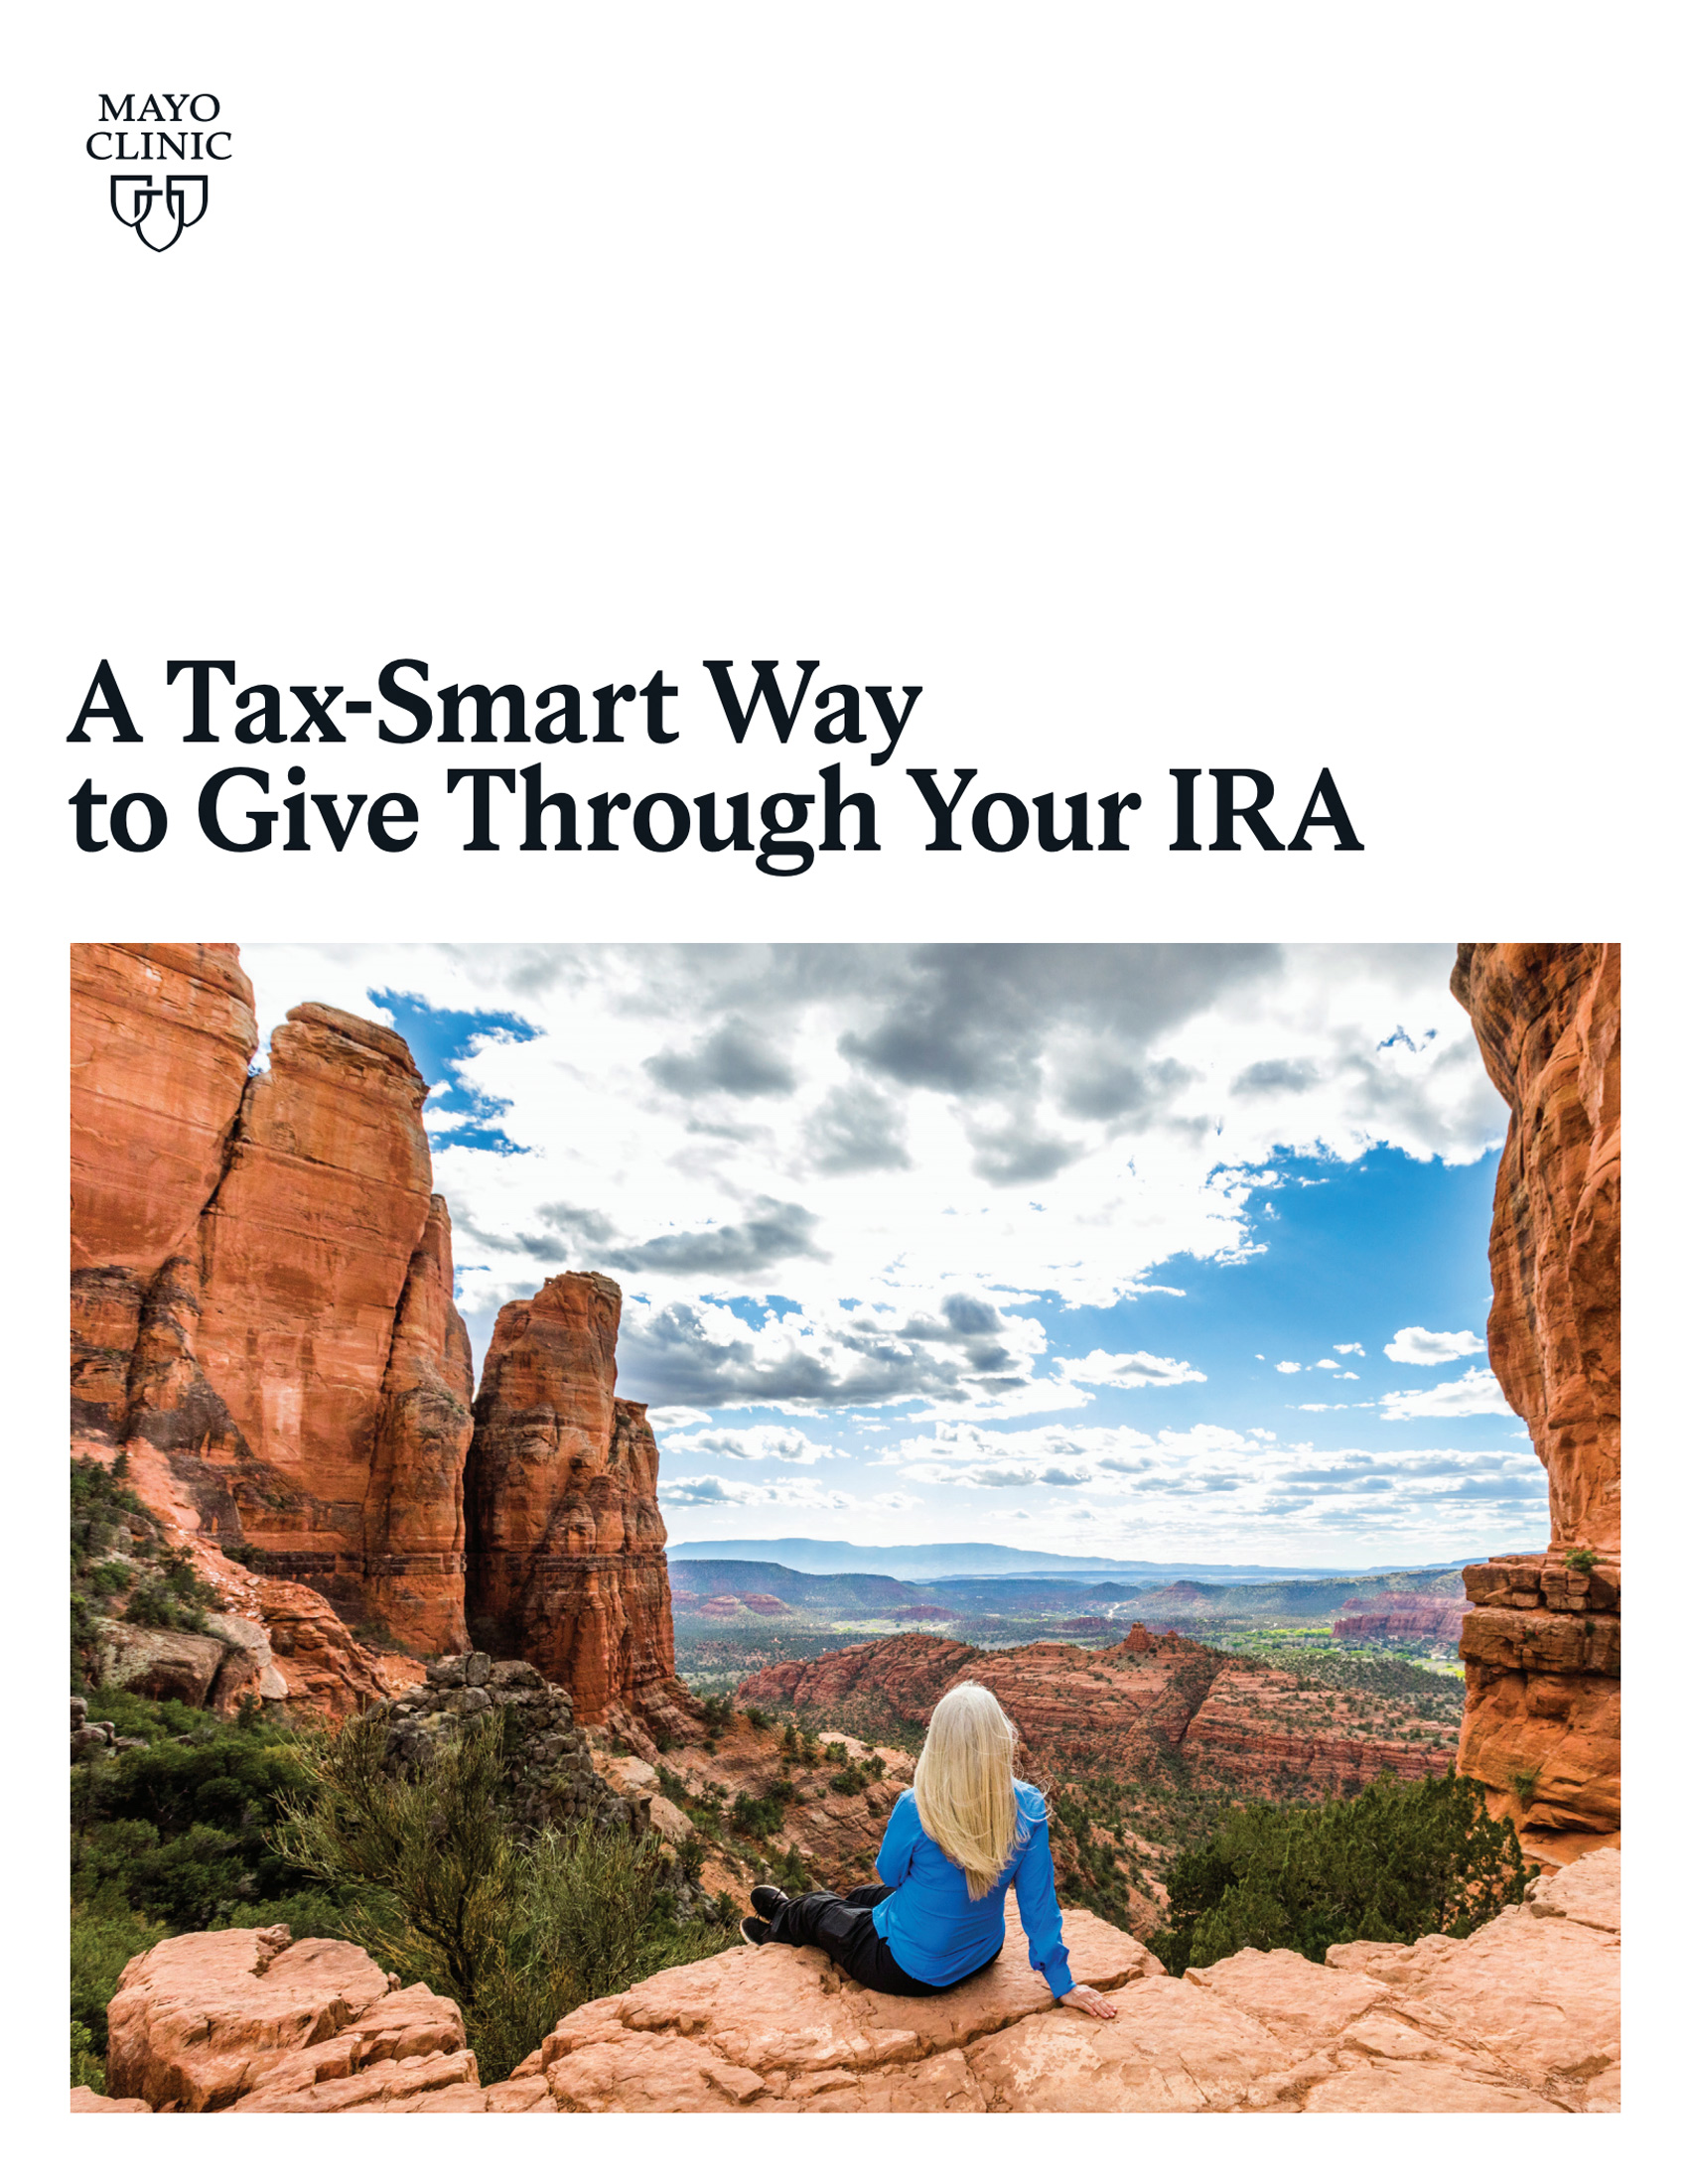 A Tax-Smart Way to Give Through Your IRA